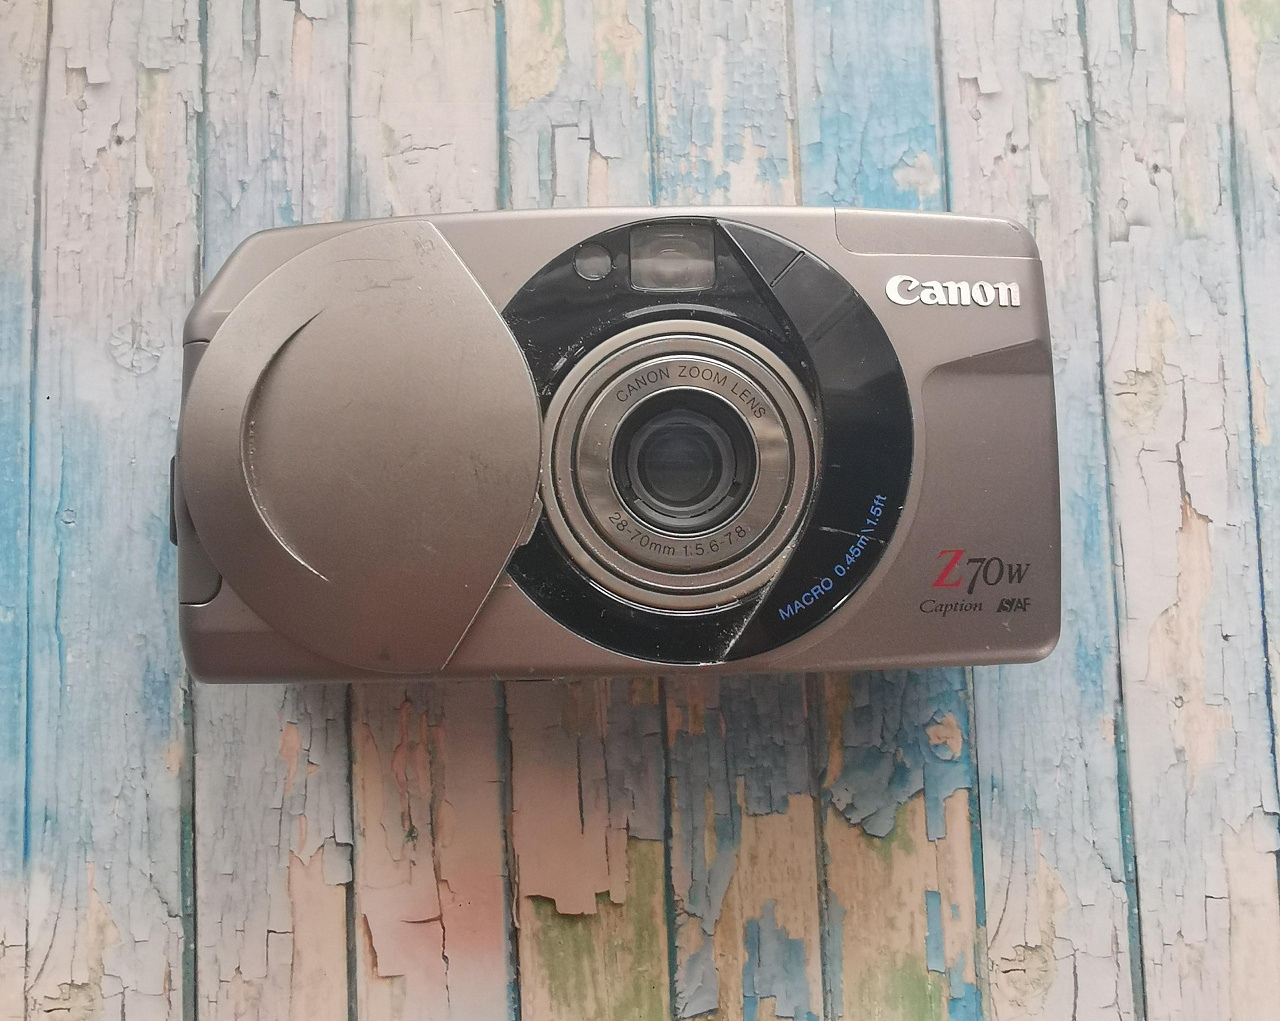 Canon Prima Super 28/Sure Shot z70W фото №1